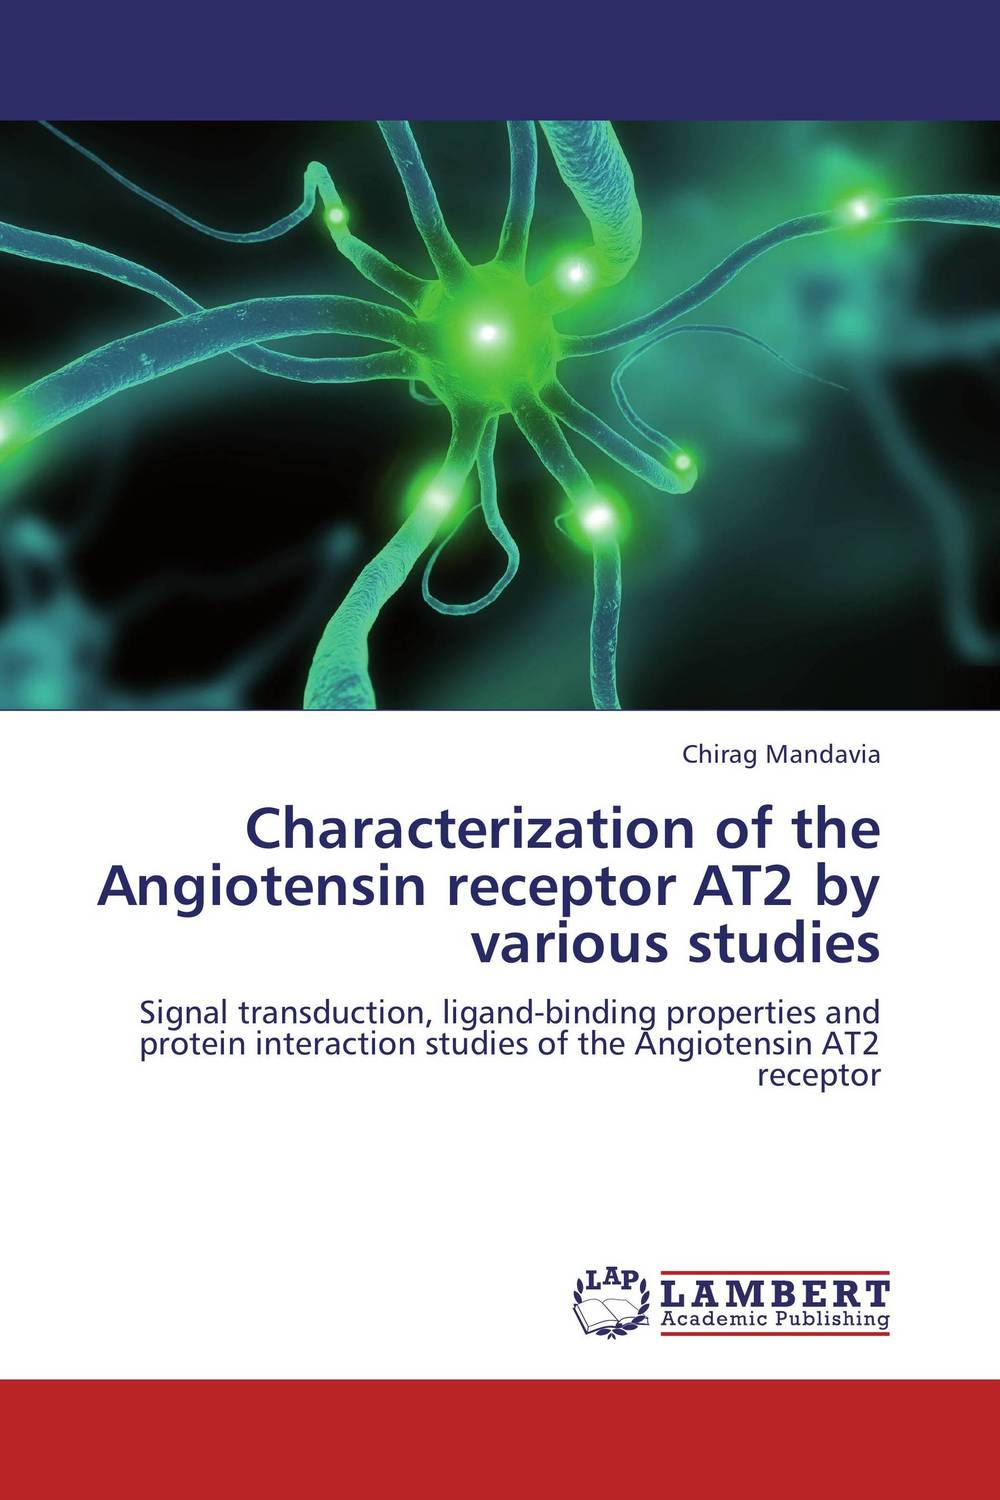 Characterization of the Angiotensin receptor AT2 by various studies modulation of hiv co receptor expression on cells by anti virals